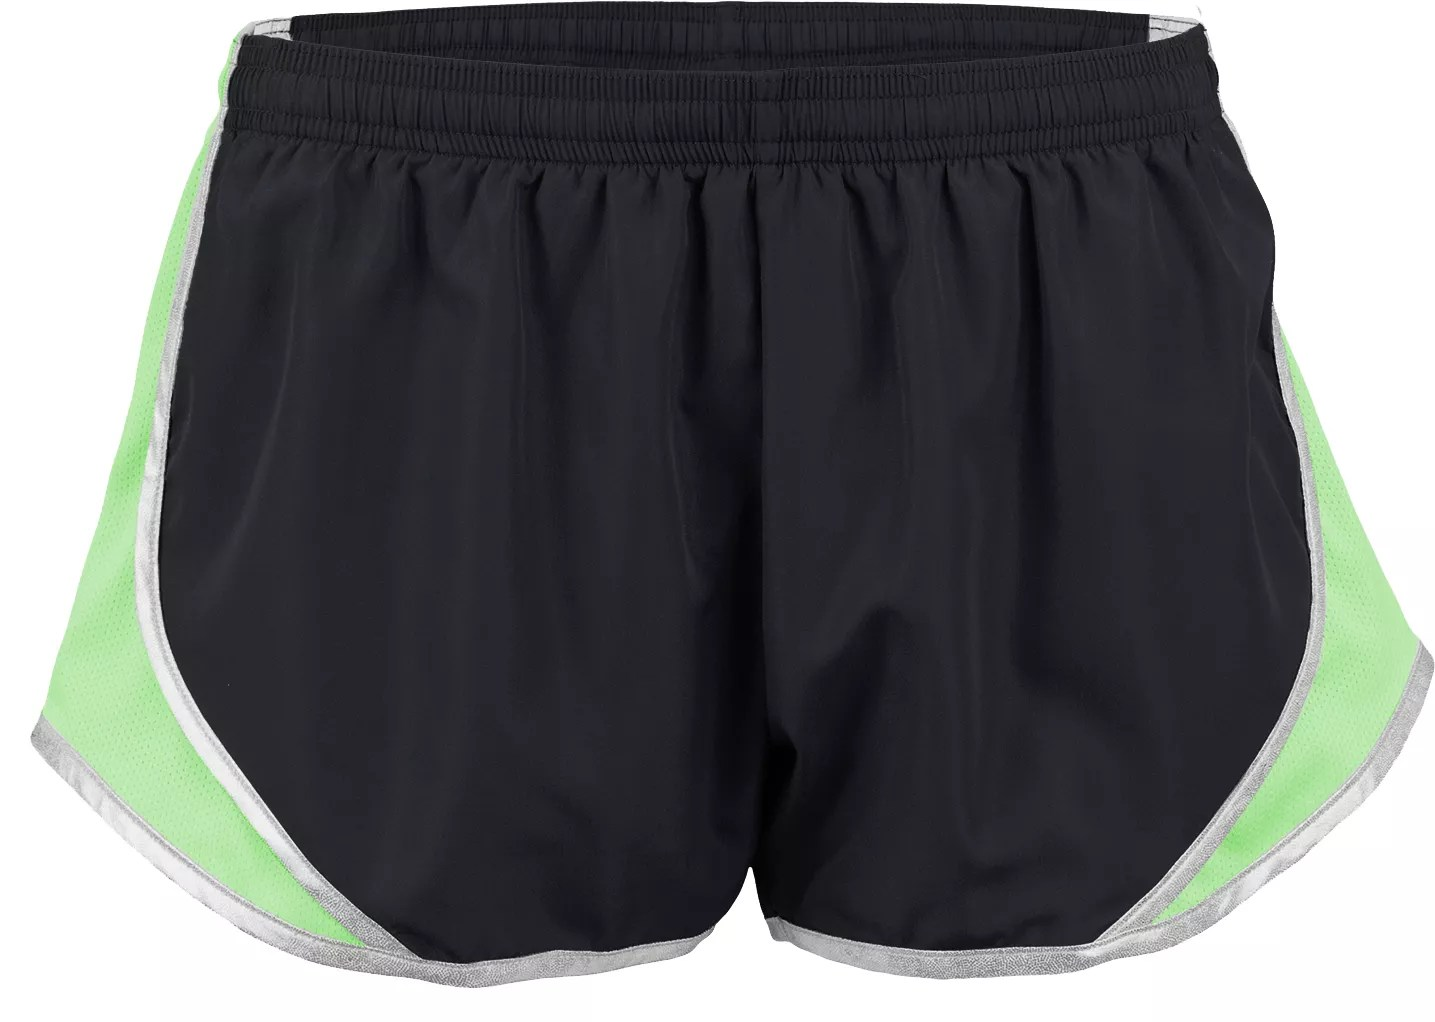 Soffe Juniors' Team Shorty Shorts Dick' Sporting Goods